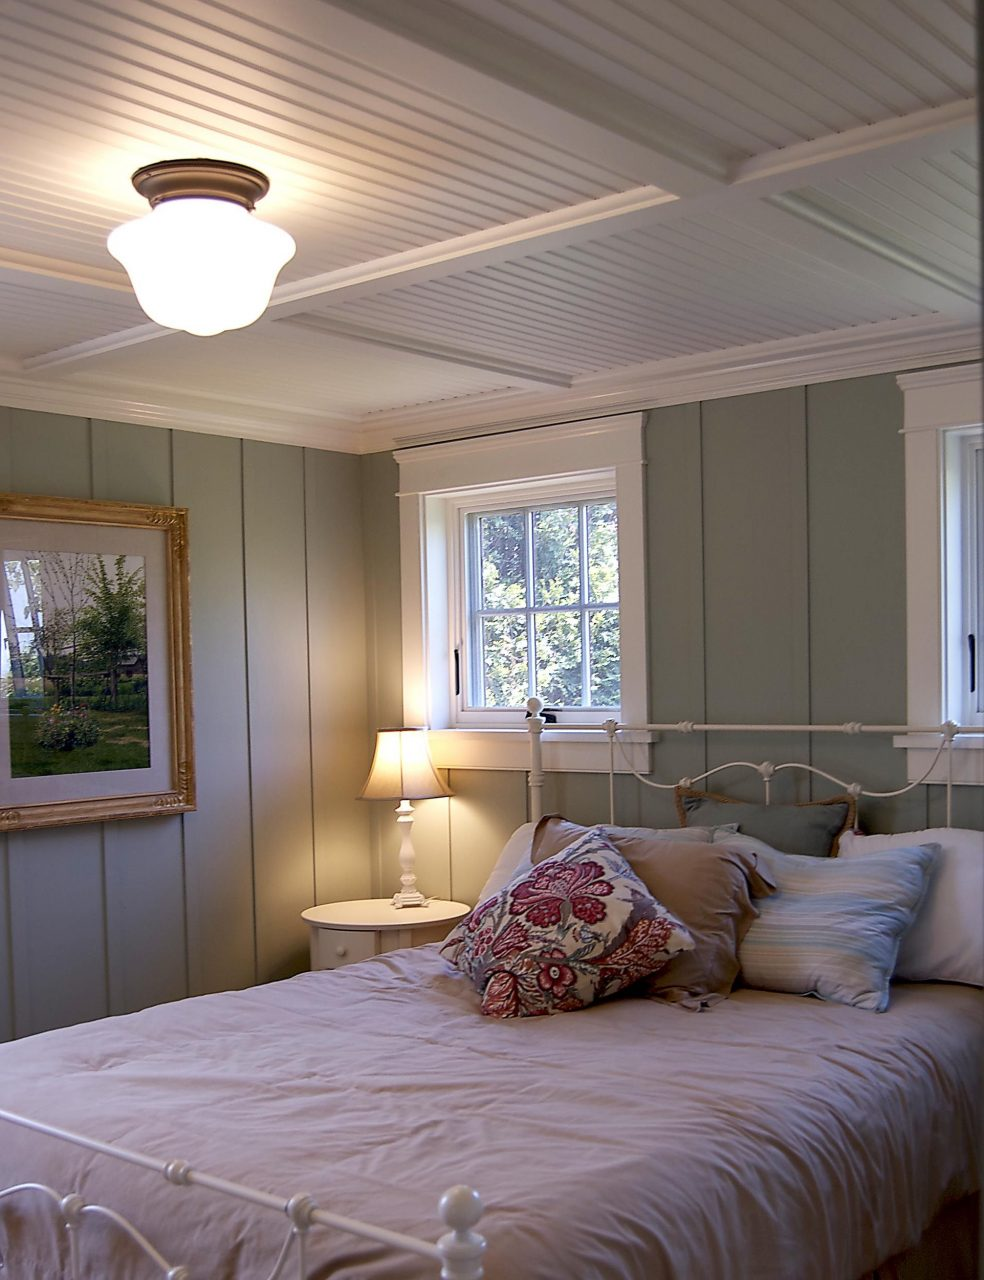 Ceiling Colours For Bedroom Gulfshoredesign Cottage Bedroom With